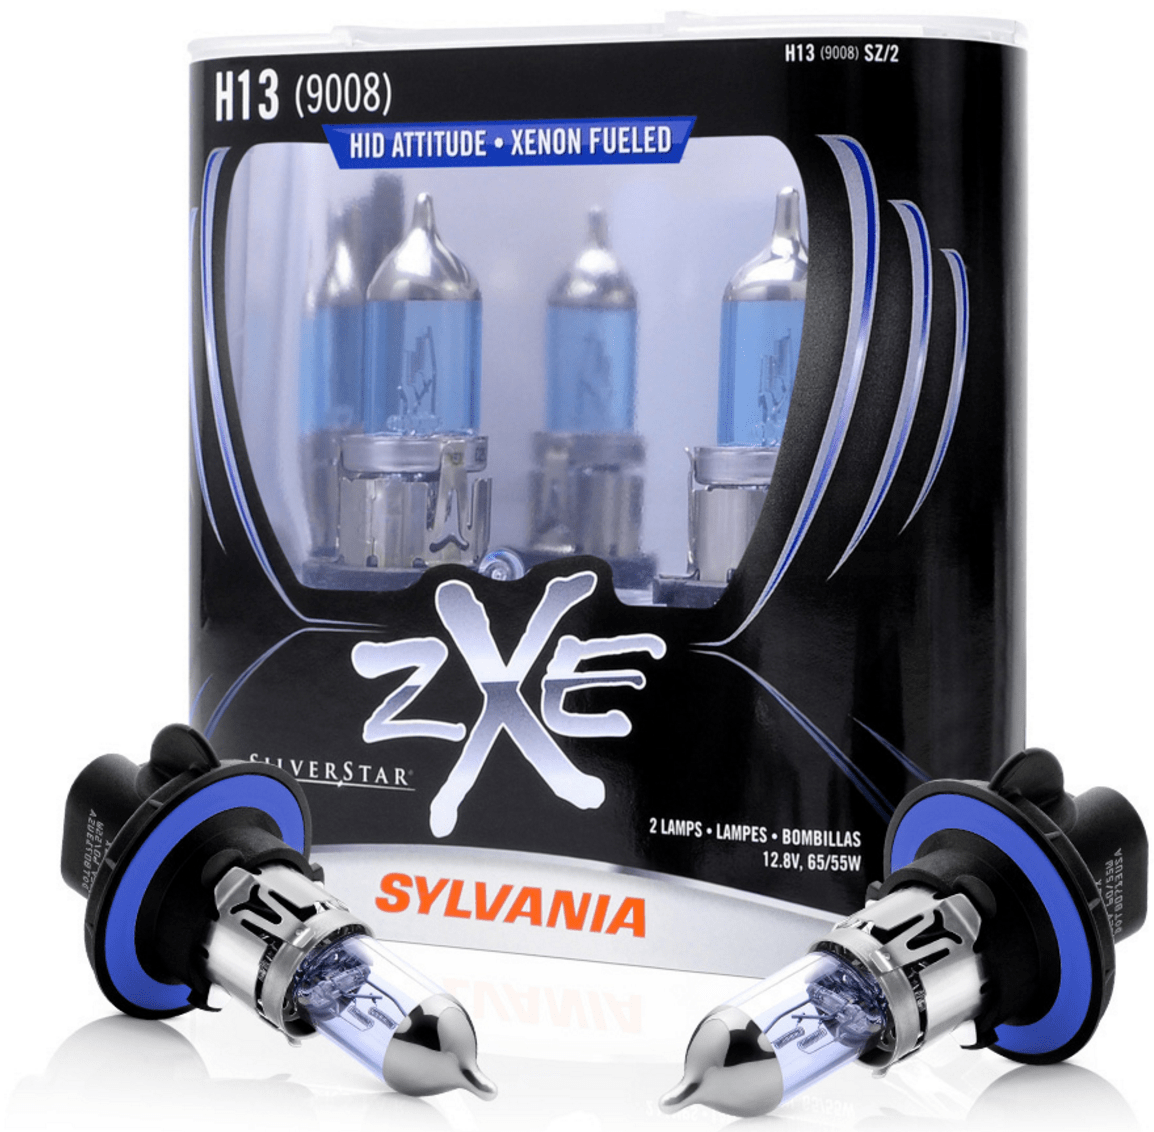 Sylvania silverstar zxe headlight review best headlight bulbs Sylvania bulbs